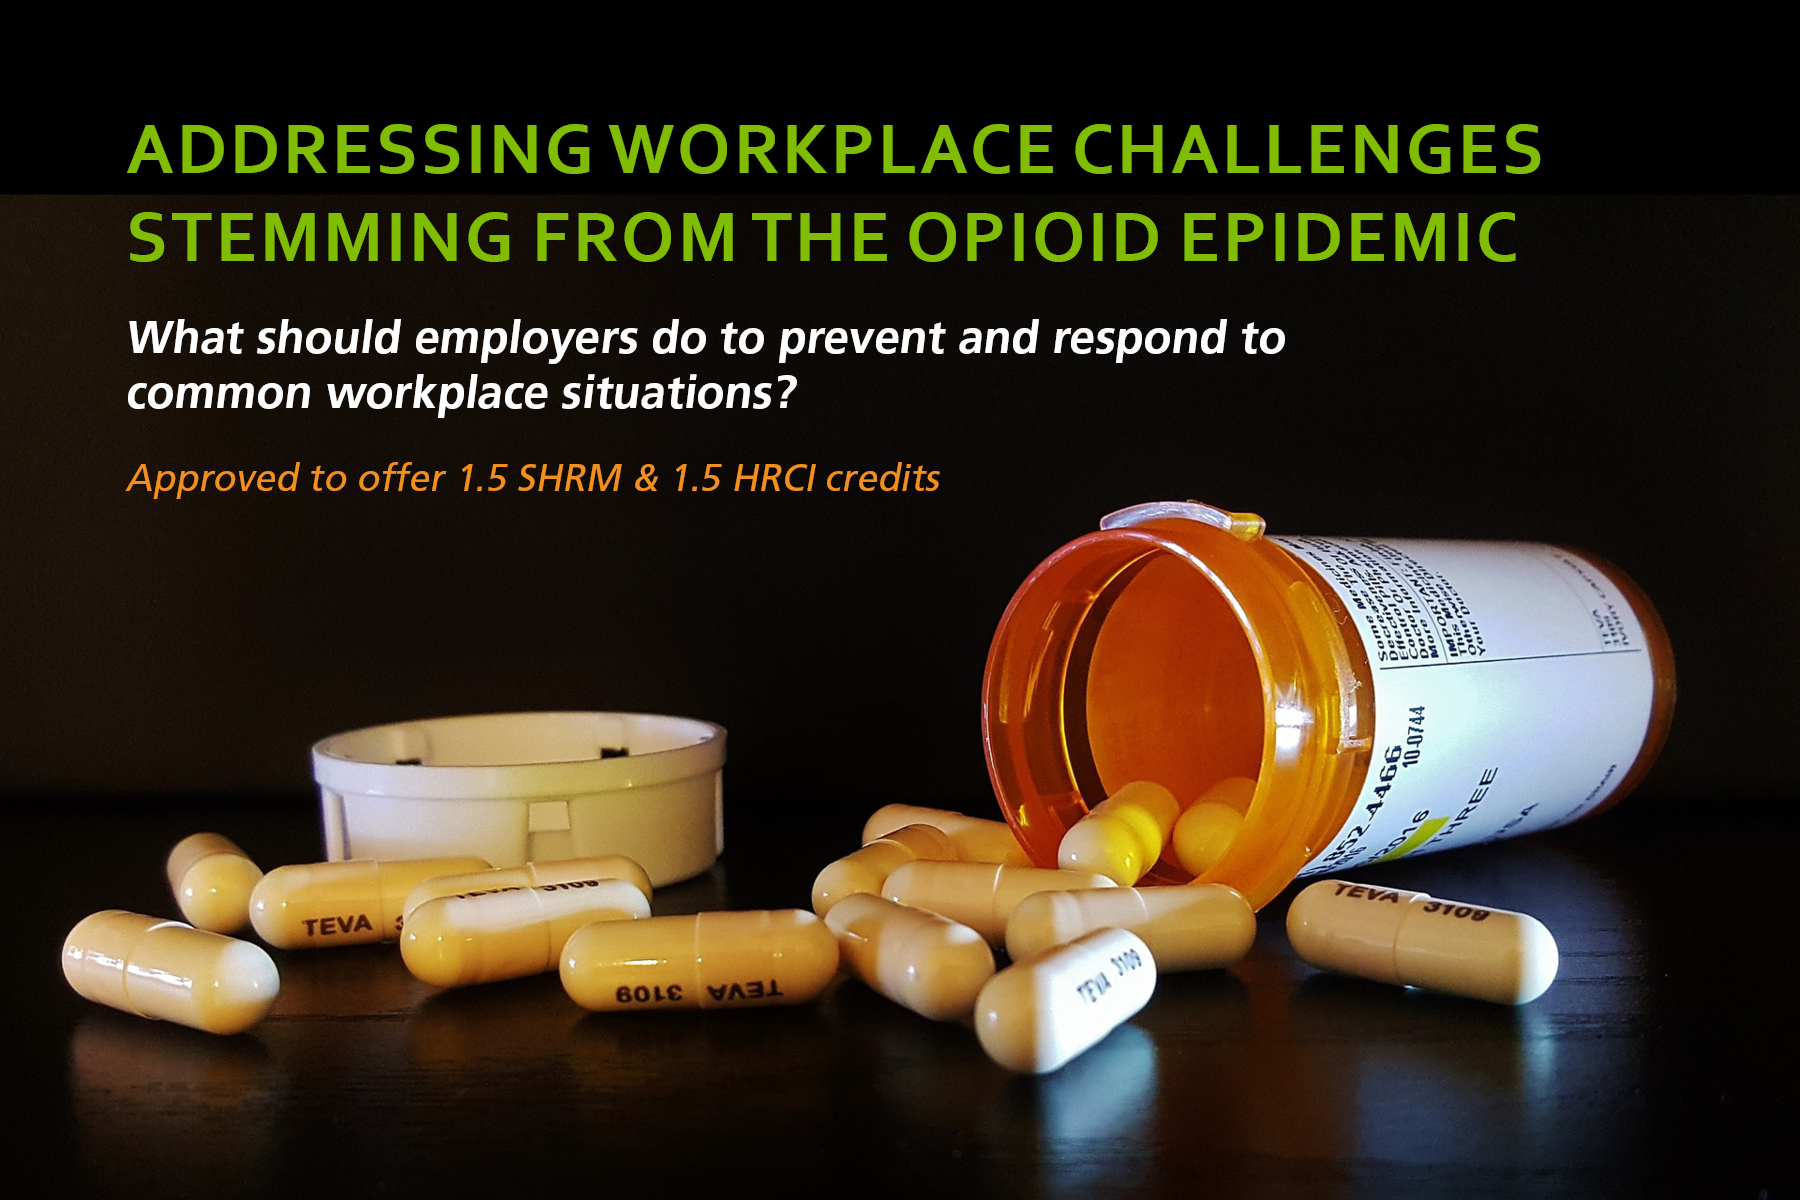 Addressing Workplace Challenges Stemming from the Opioid Epidemic